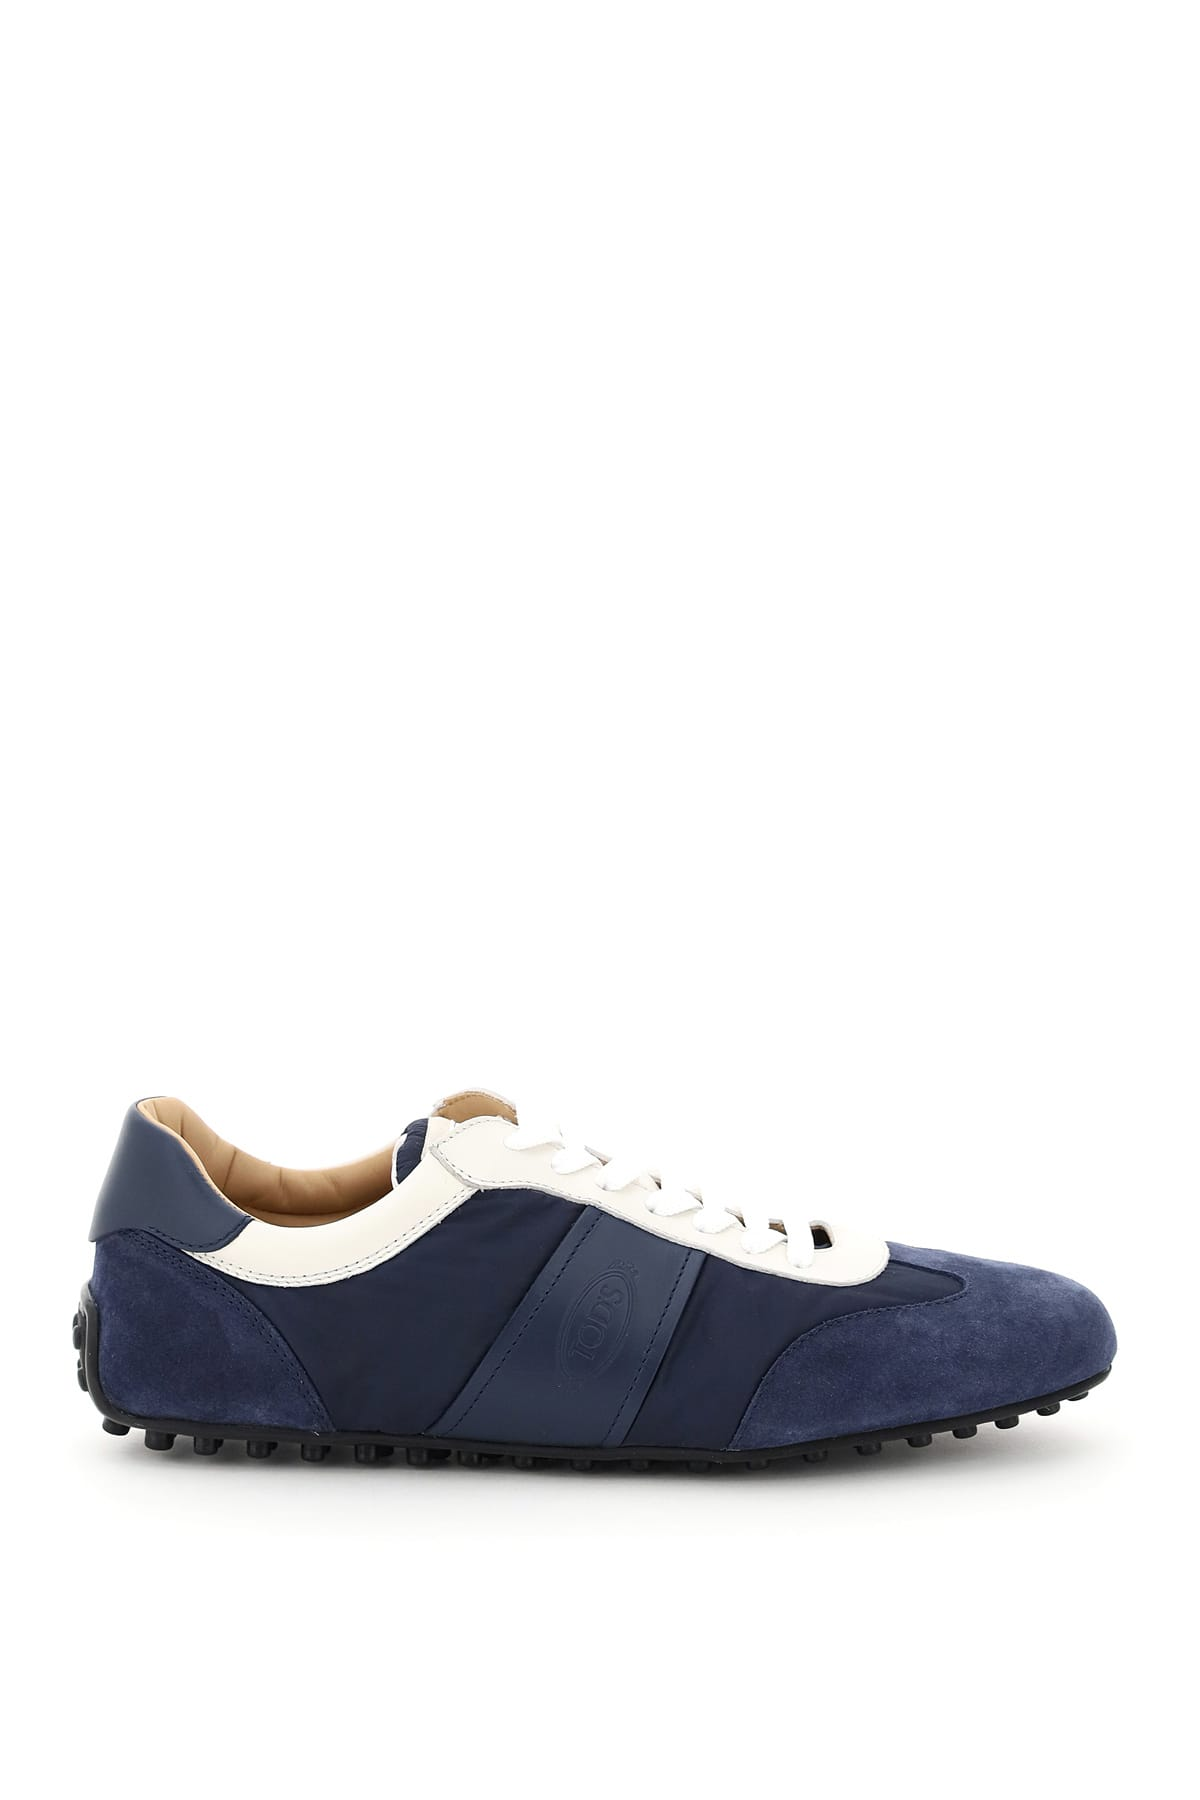 Tods Leather And Fabric Sneakers